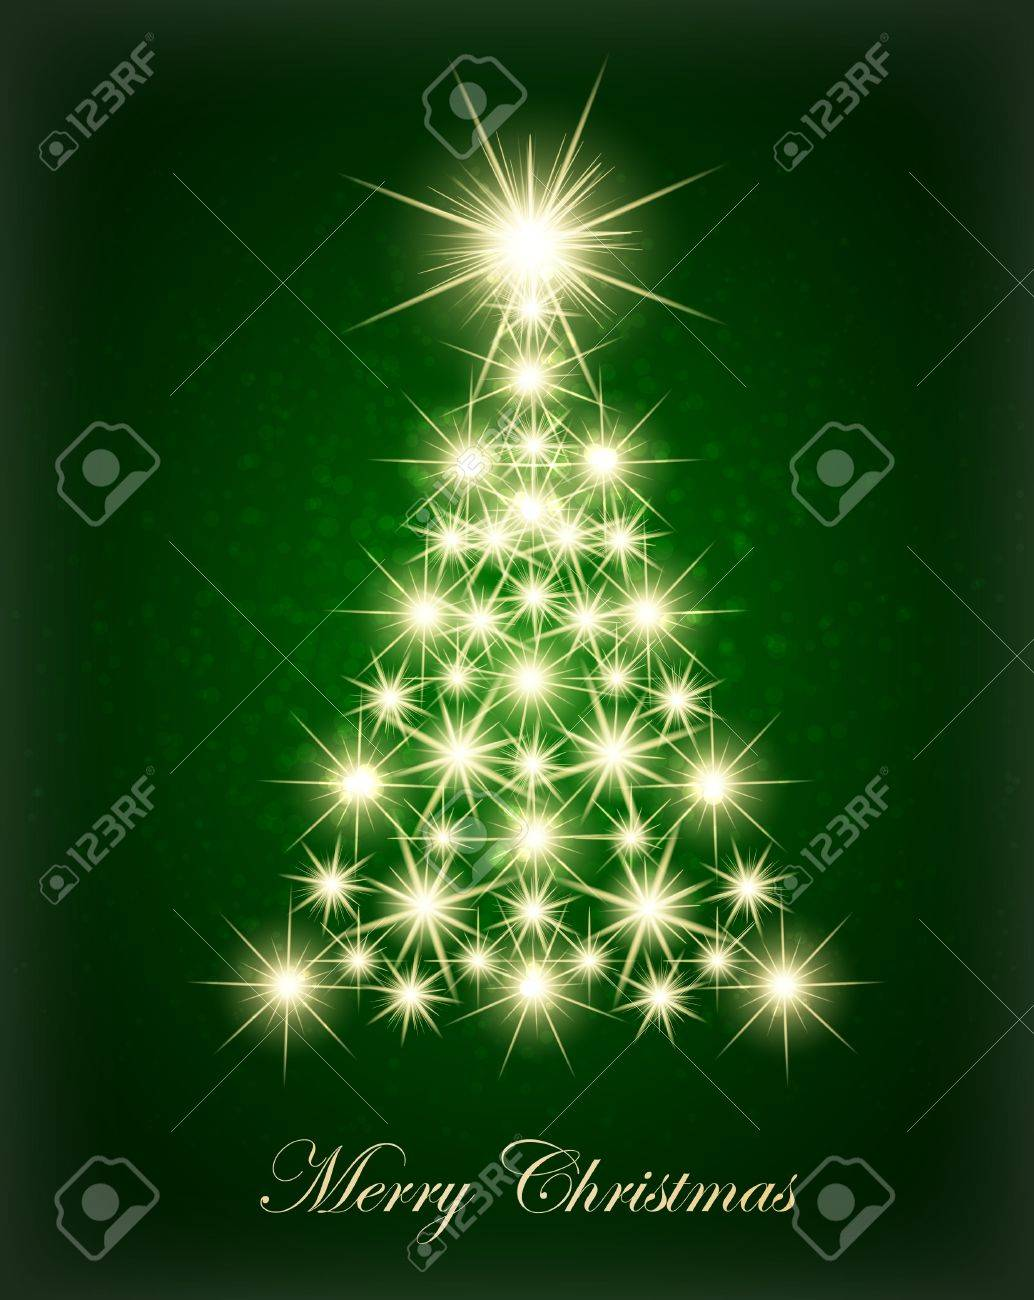 christmas tree made with glowing lights stock vector 10788045 - Christmas Tree Made Of Lights